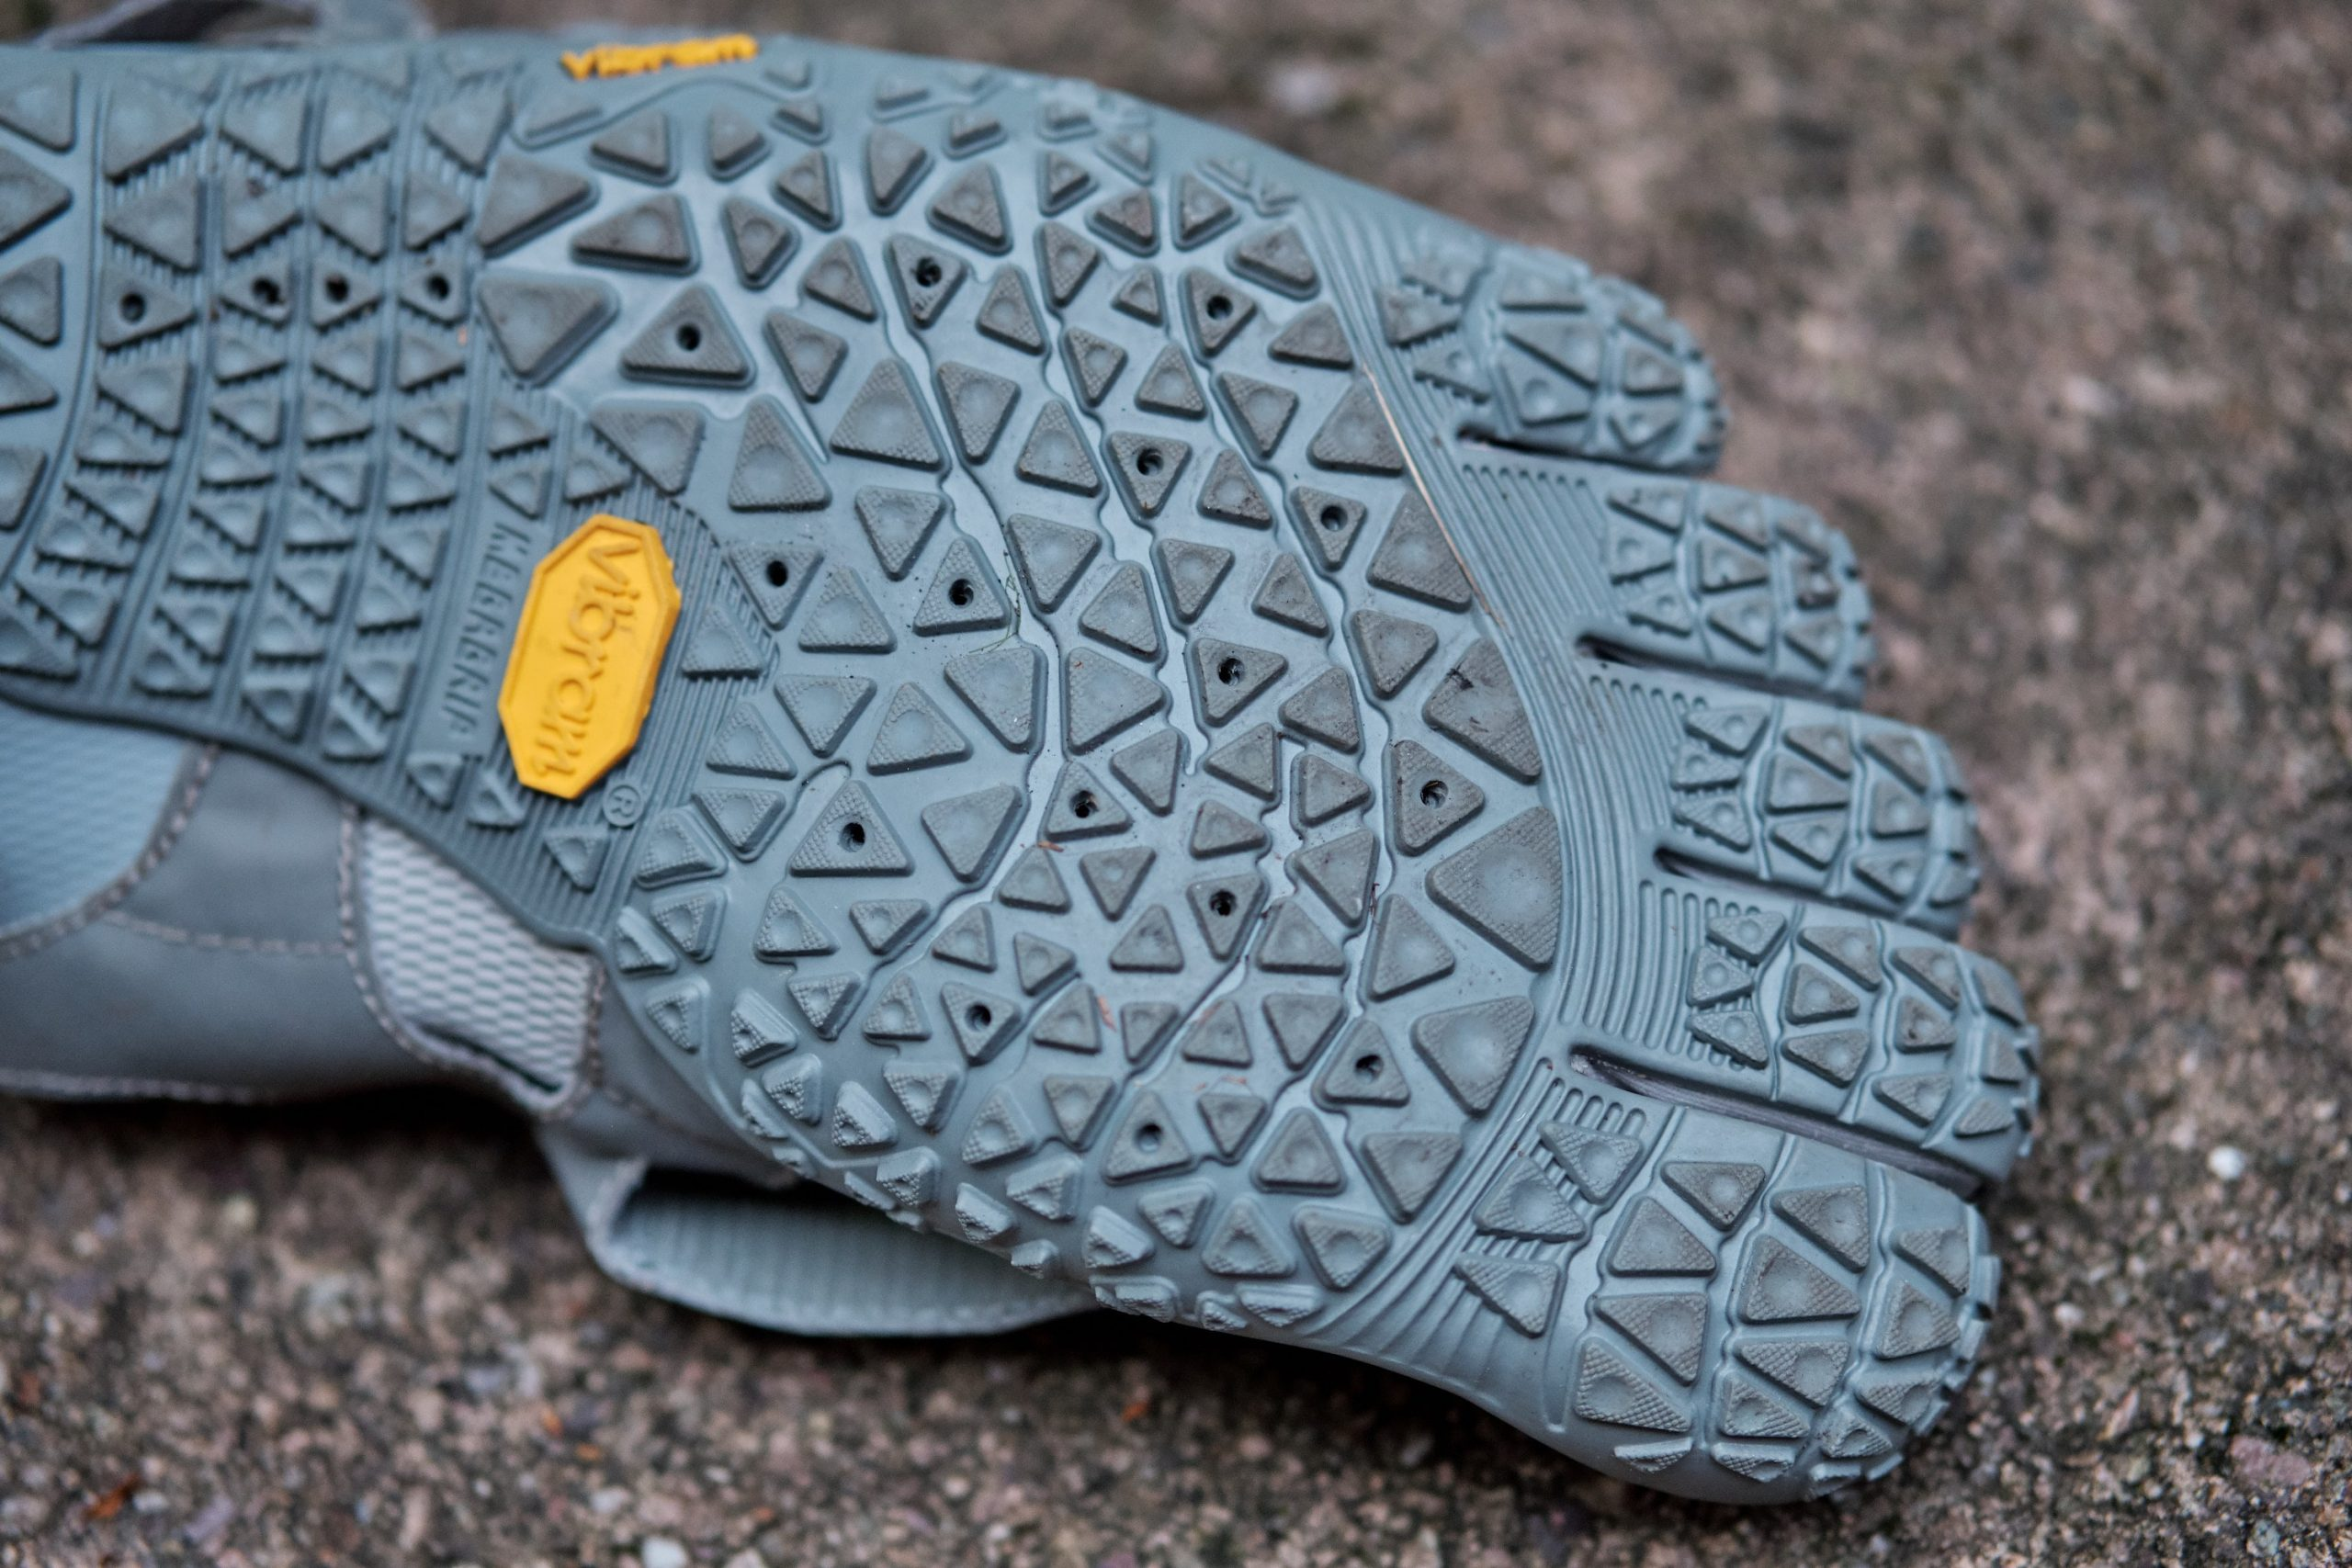 The same excellent sole from the V-Alpha comes to the V-Aqua with fantastic groundfeel and flexibility